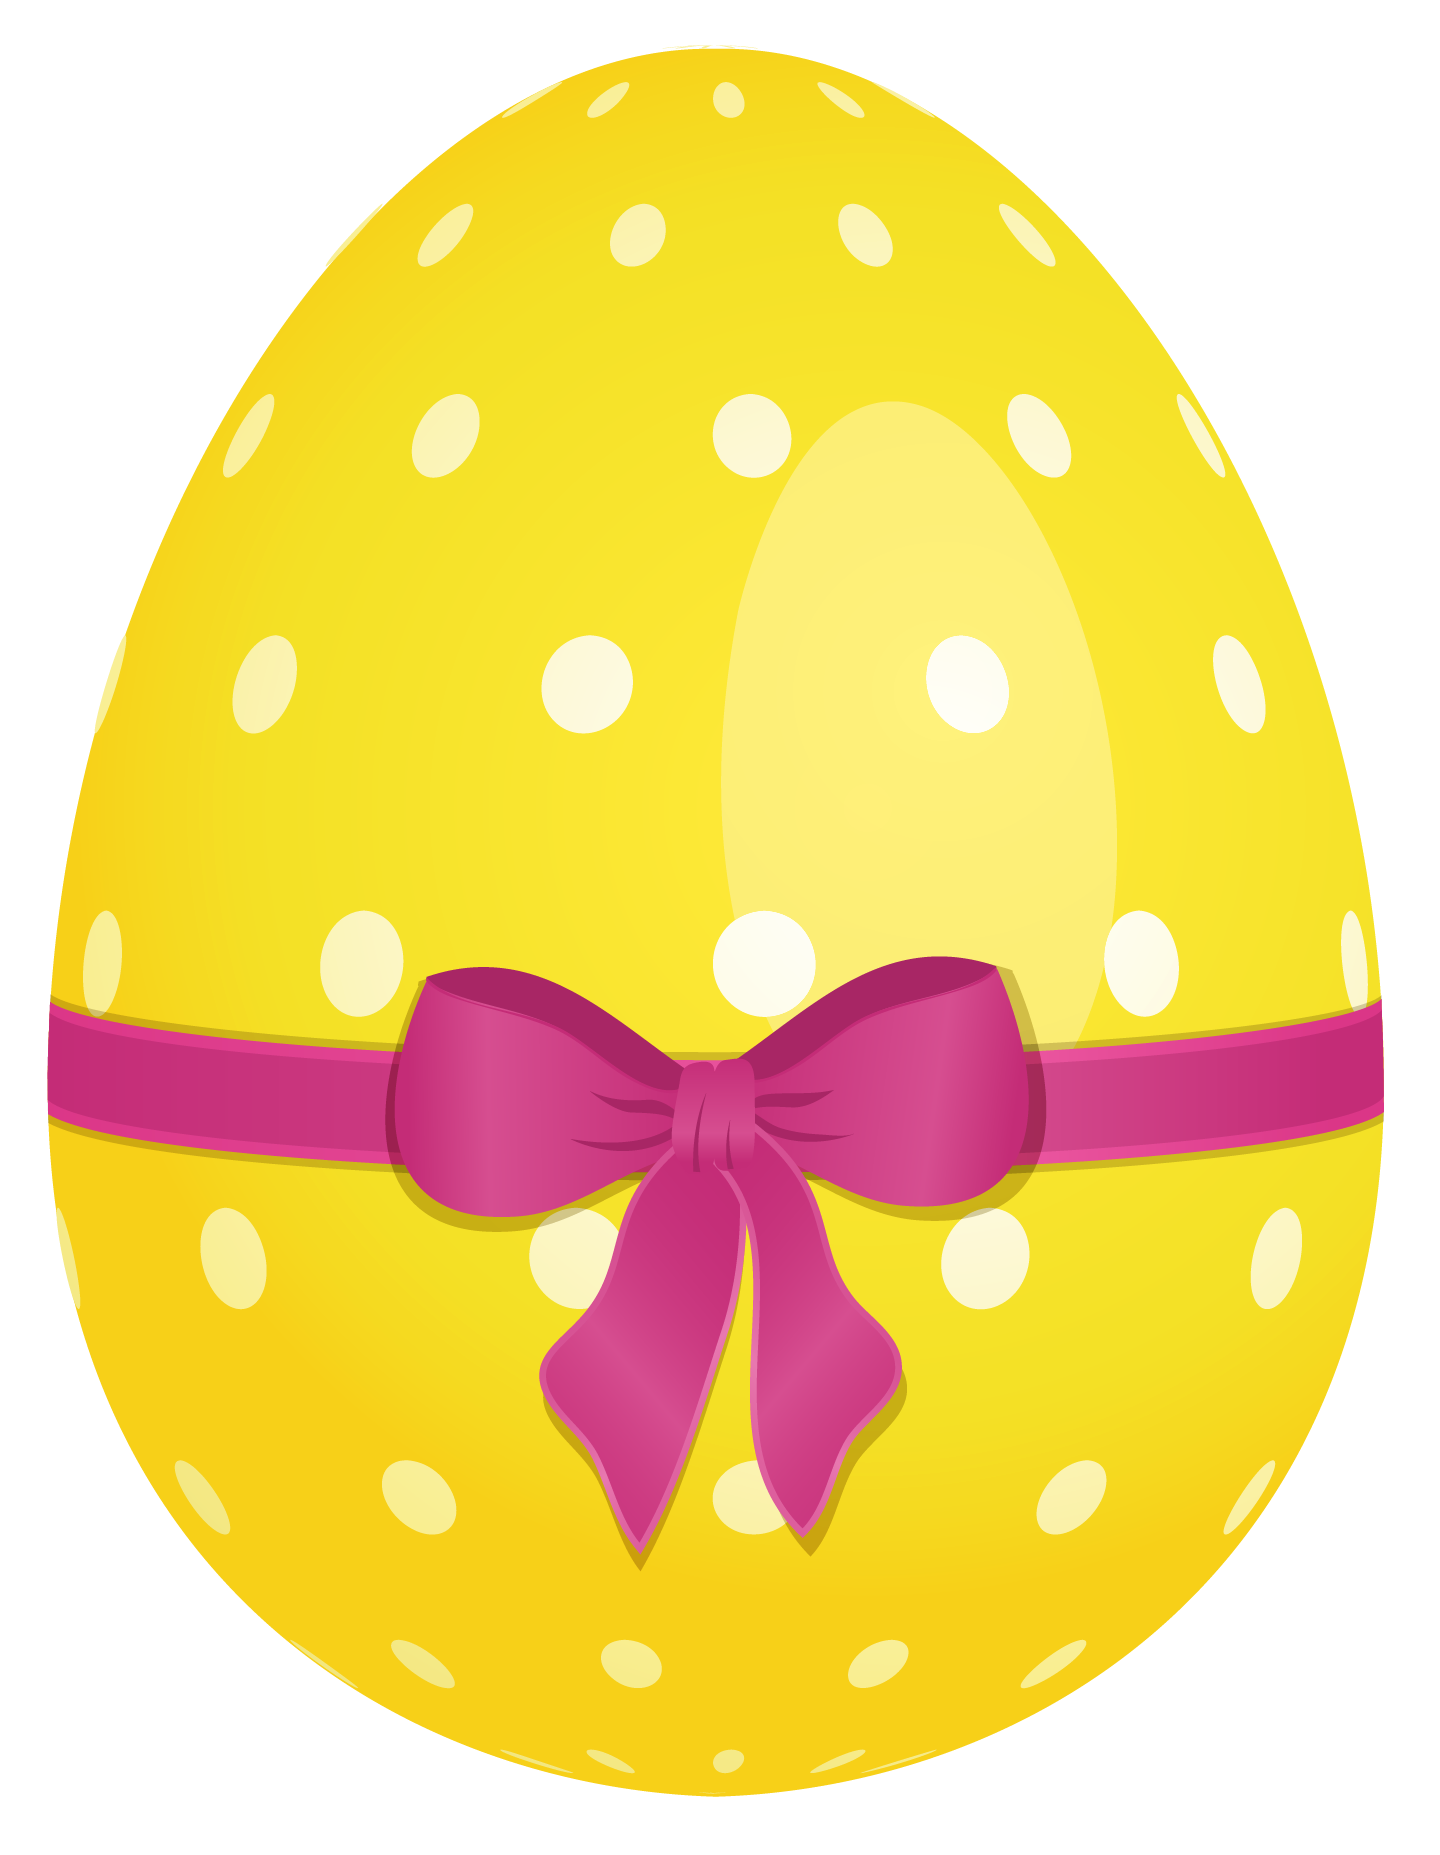 1440x1855 Yellow Dotted Easter Egg With Pink Bow Clipart